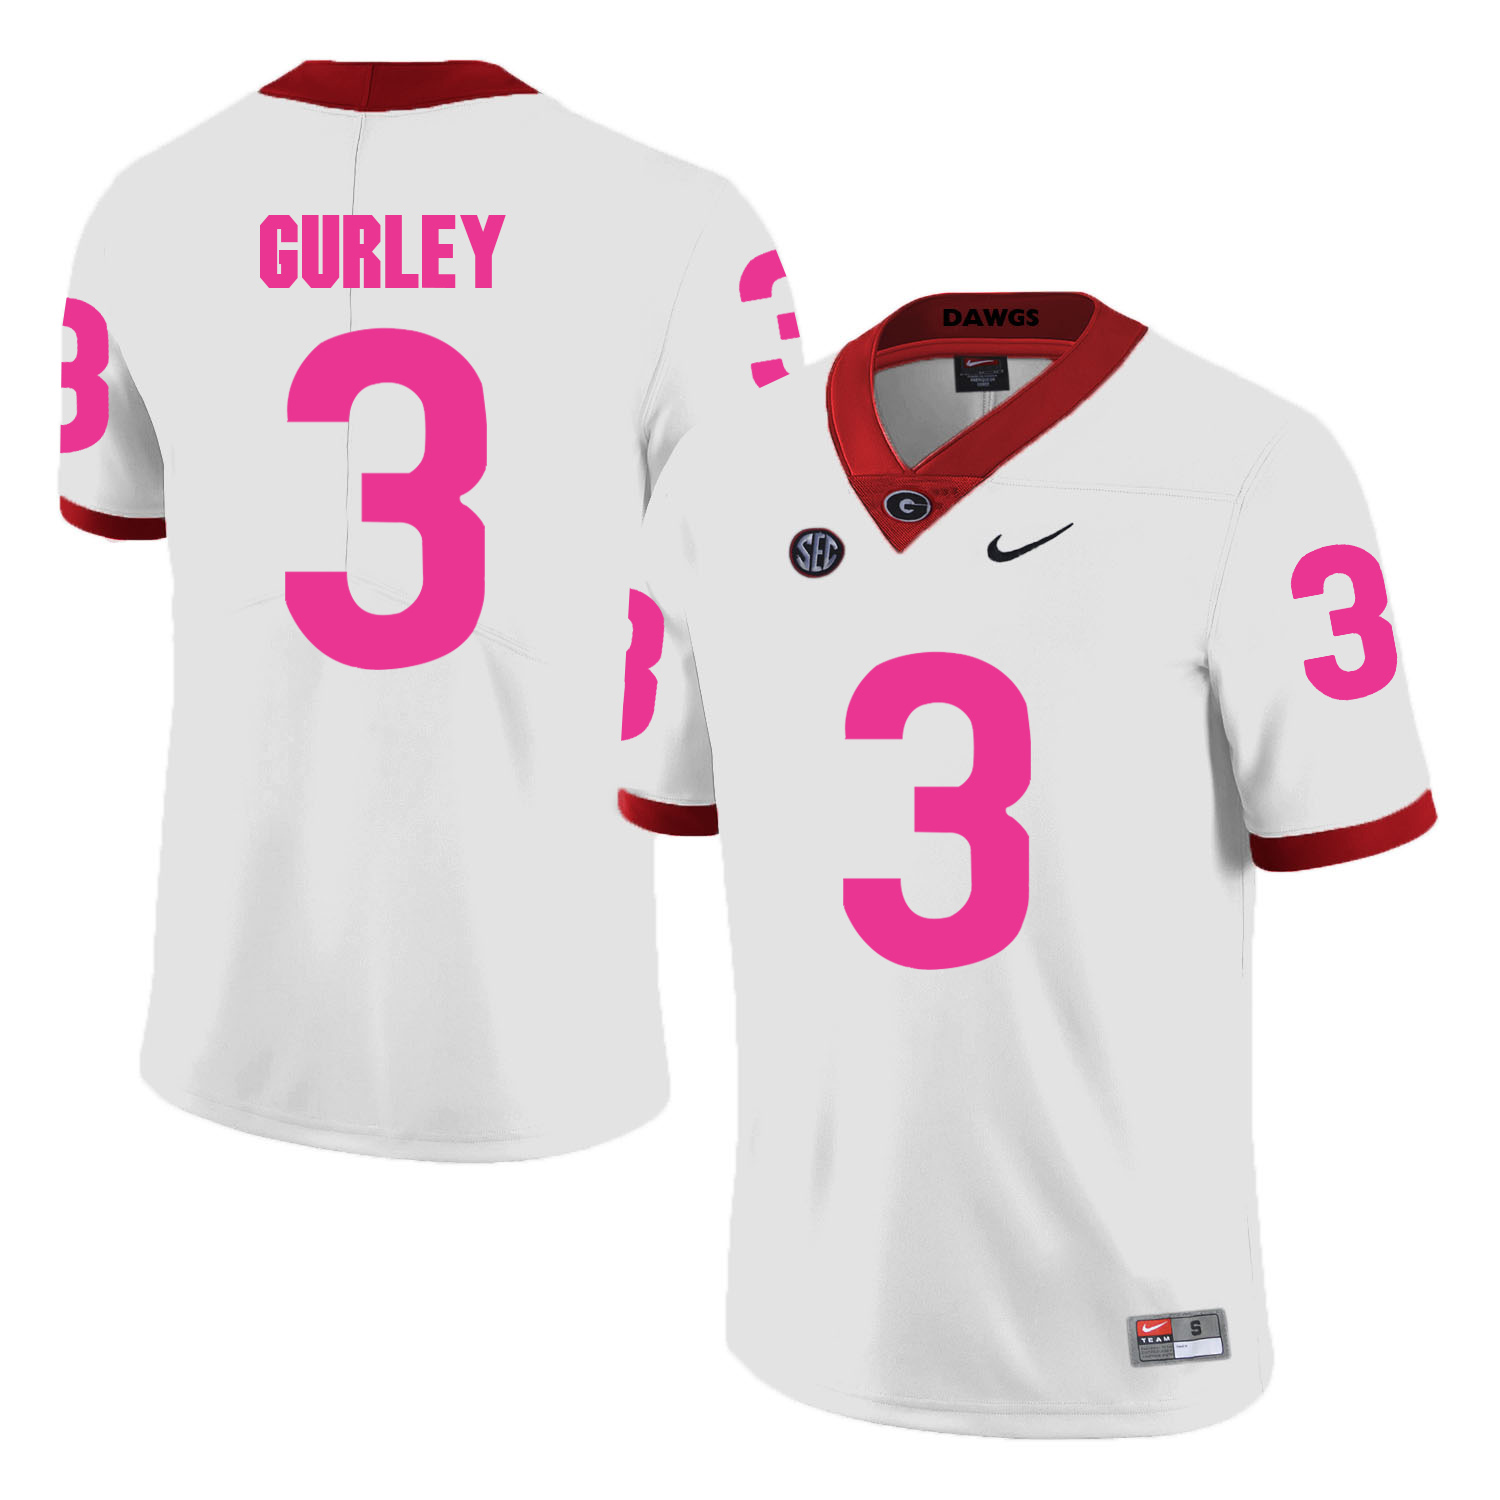 Georgia Bulldogs 3 Todd Gurley White 2018 Breast Cancer Awareness College Football Jersey